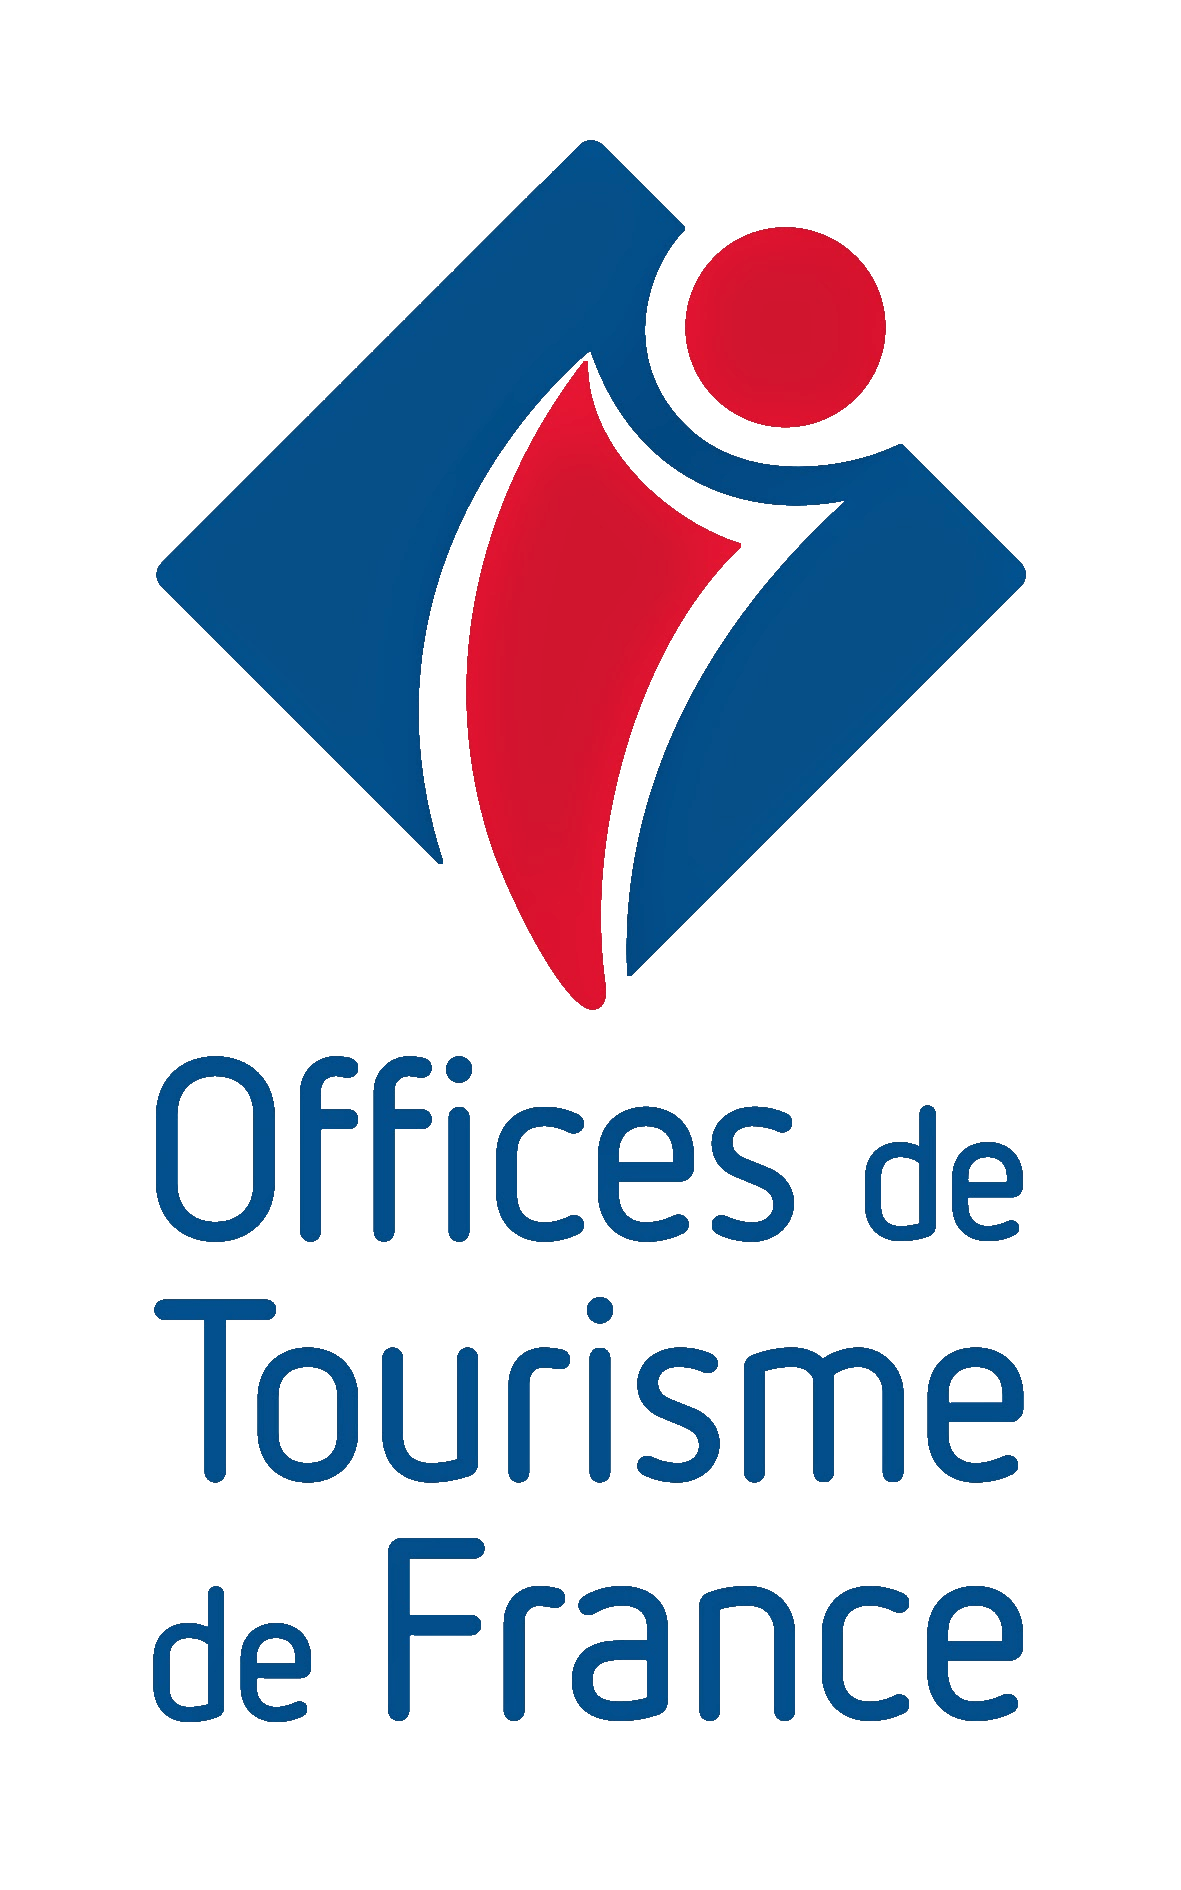 Office du Tourisme d'Ugine